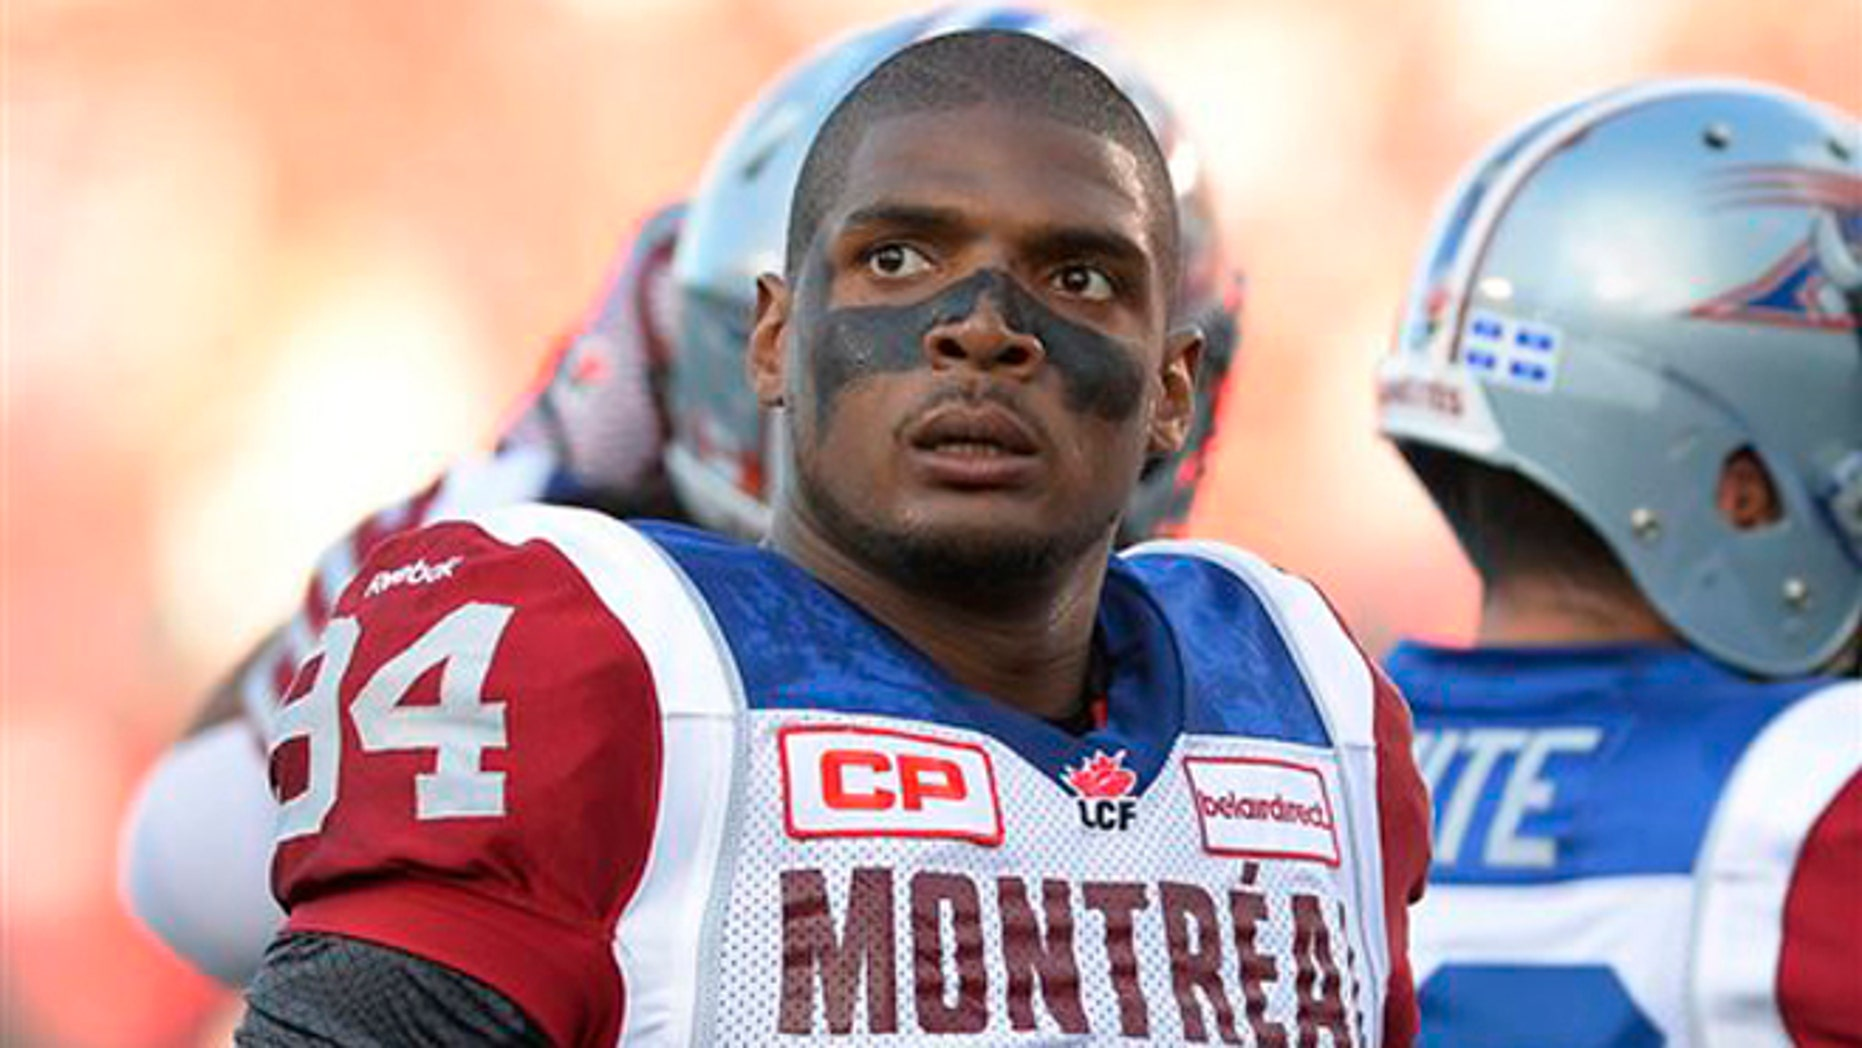 Aug. 7, 2014: In this file photo, Montreal Alouettes' Michael Sam and teammates warm up for a Canadian Football League game against the Ottawa Redblacks in Ottawa, Ontario.